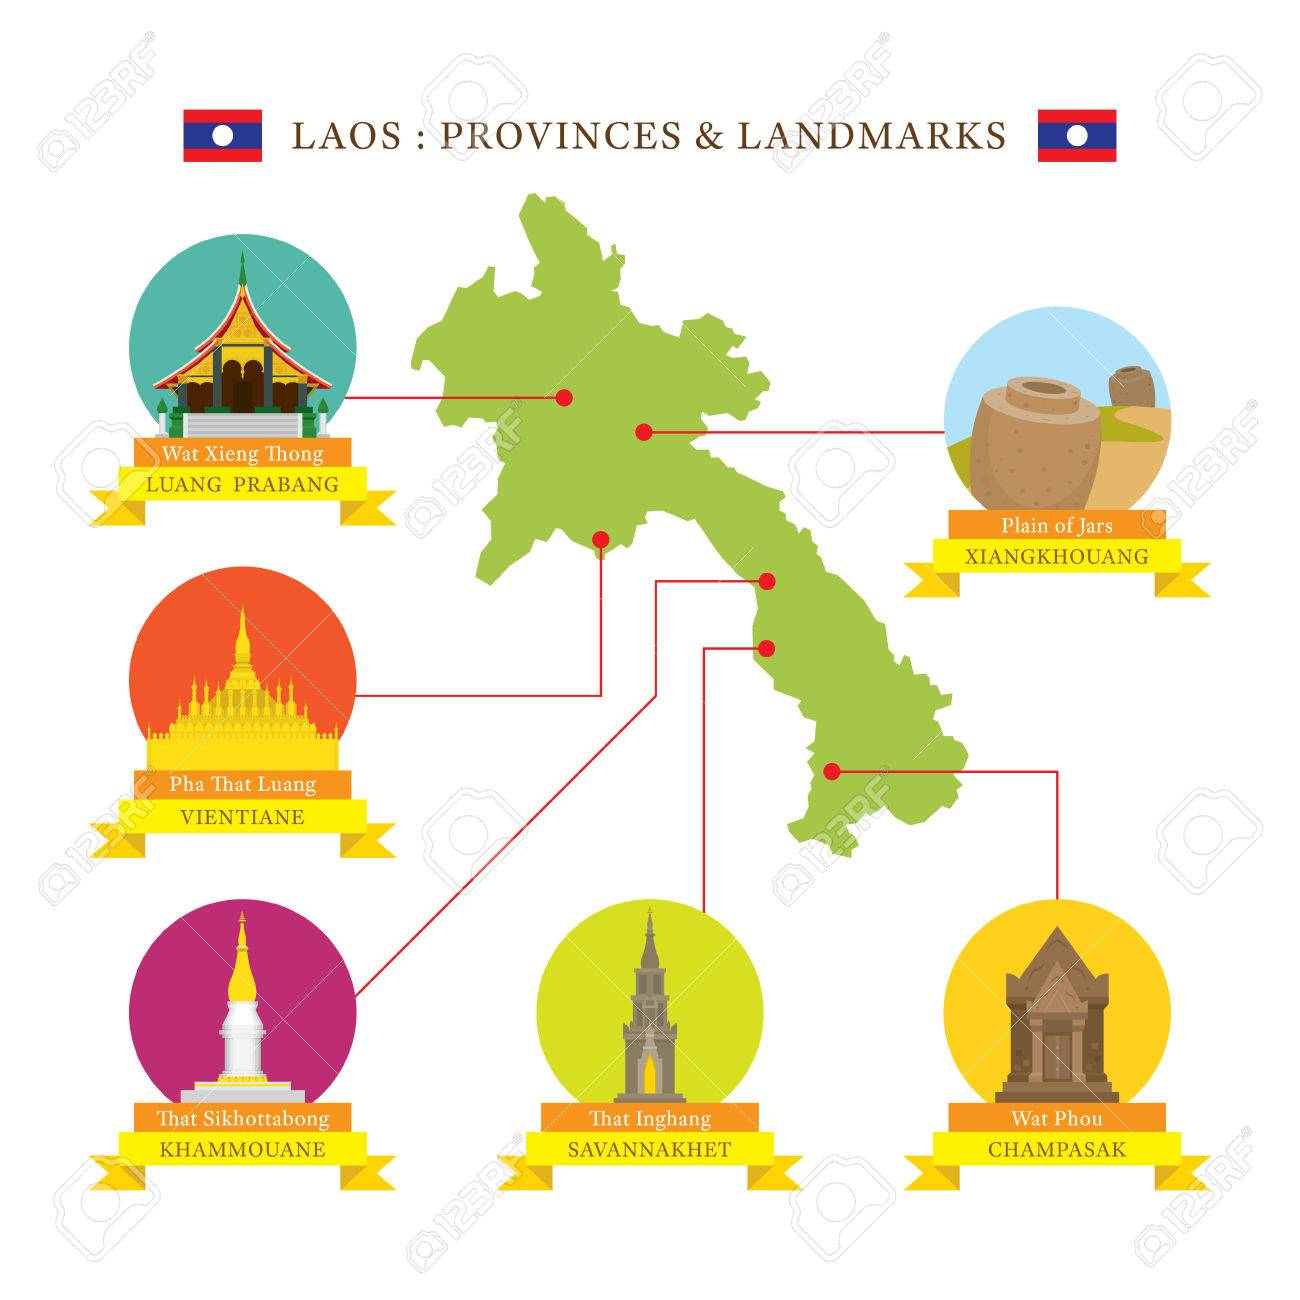 Laos Provinces And Landmarks Icons With Map Travel And Tourist